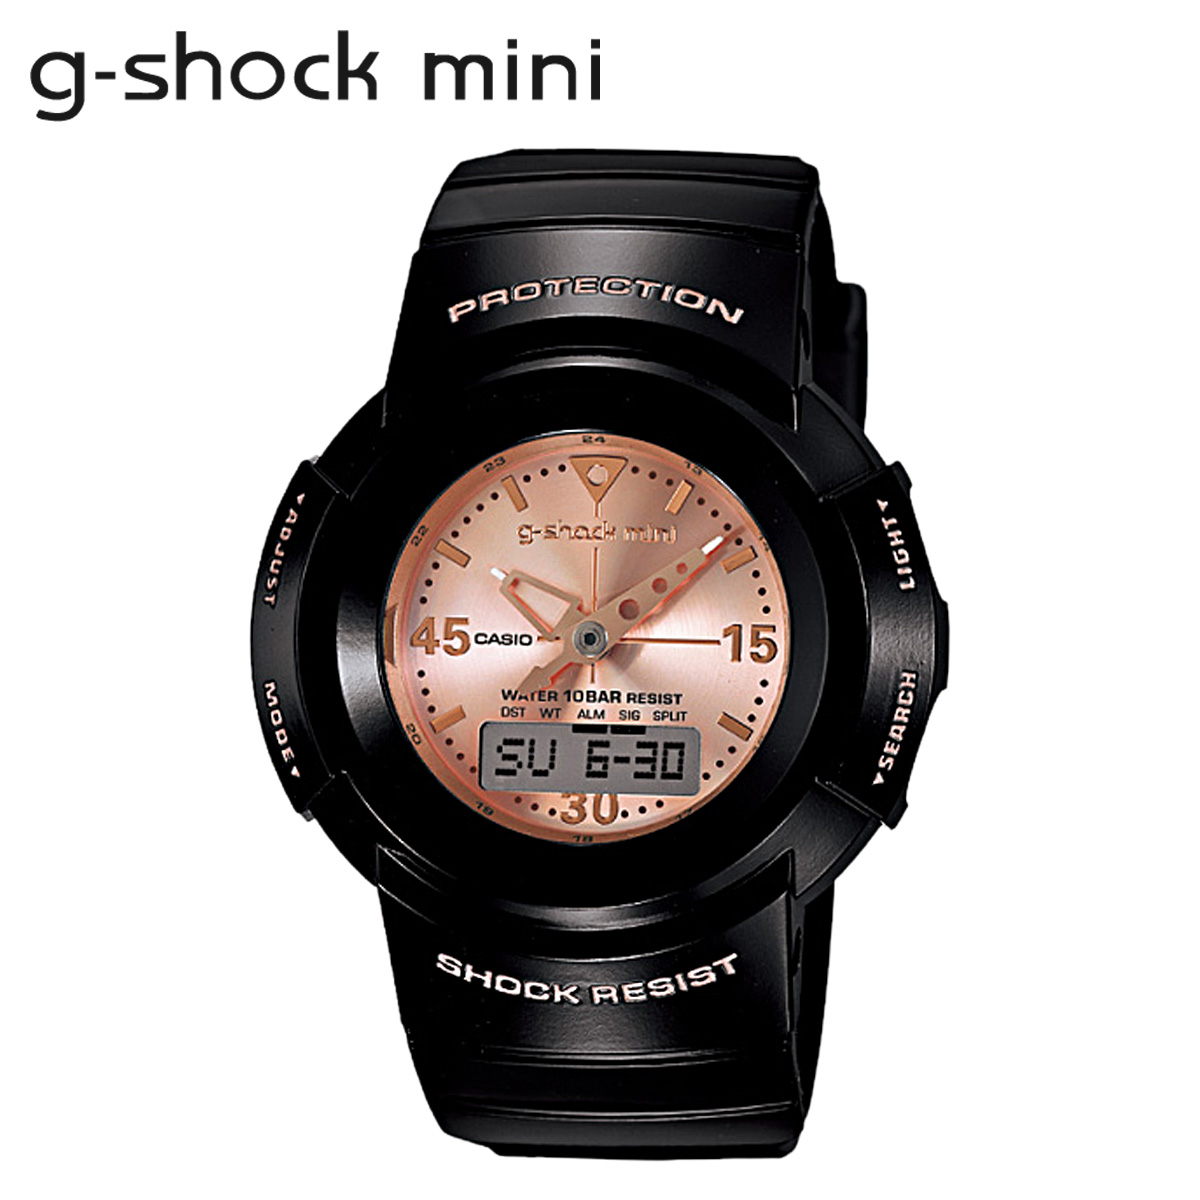 Casio GMN-50-1B3JR CASIO g-shock mini watch men's women's watches